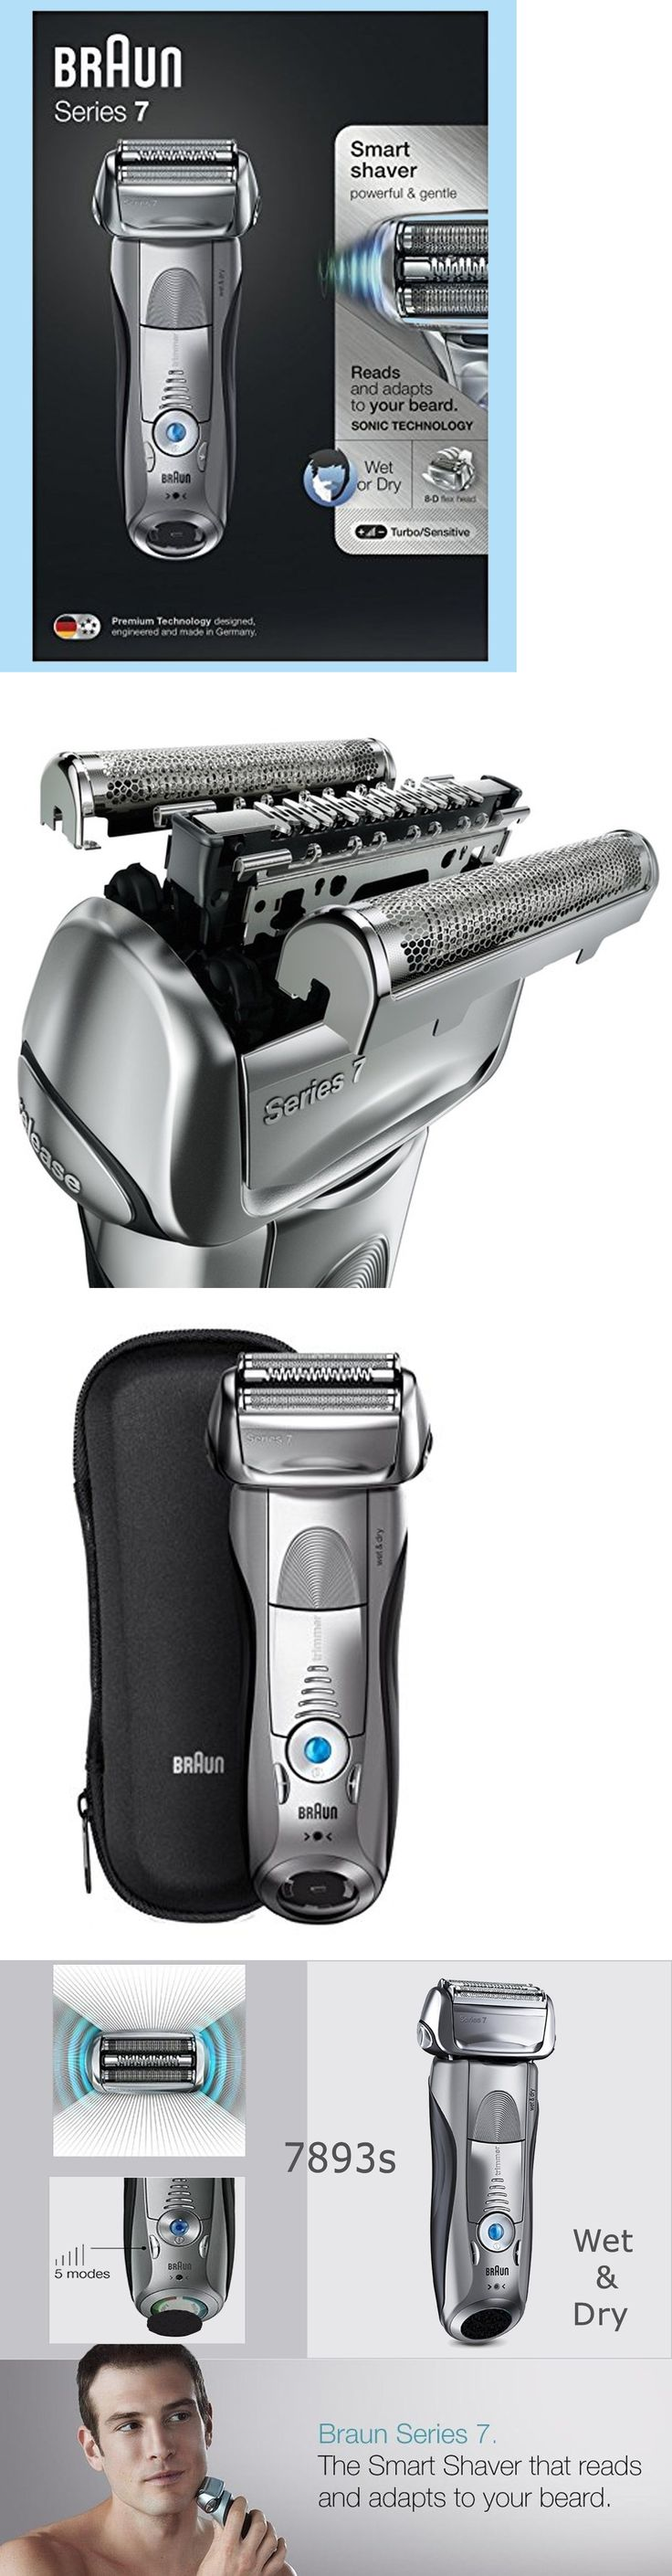 Mens Shavers: *Niob* Braun Series 7 Smart Shaver 7893S Wet And Dry Sonic Technology Case And Brush -> BUY IT NOW ONLY: $108.9 on eBay!